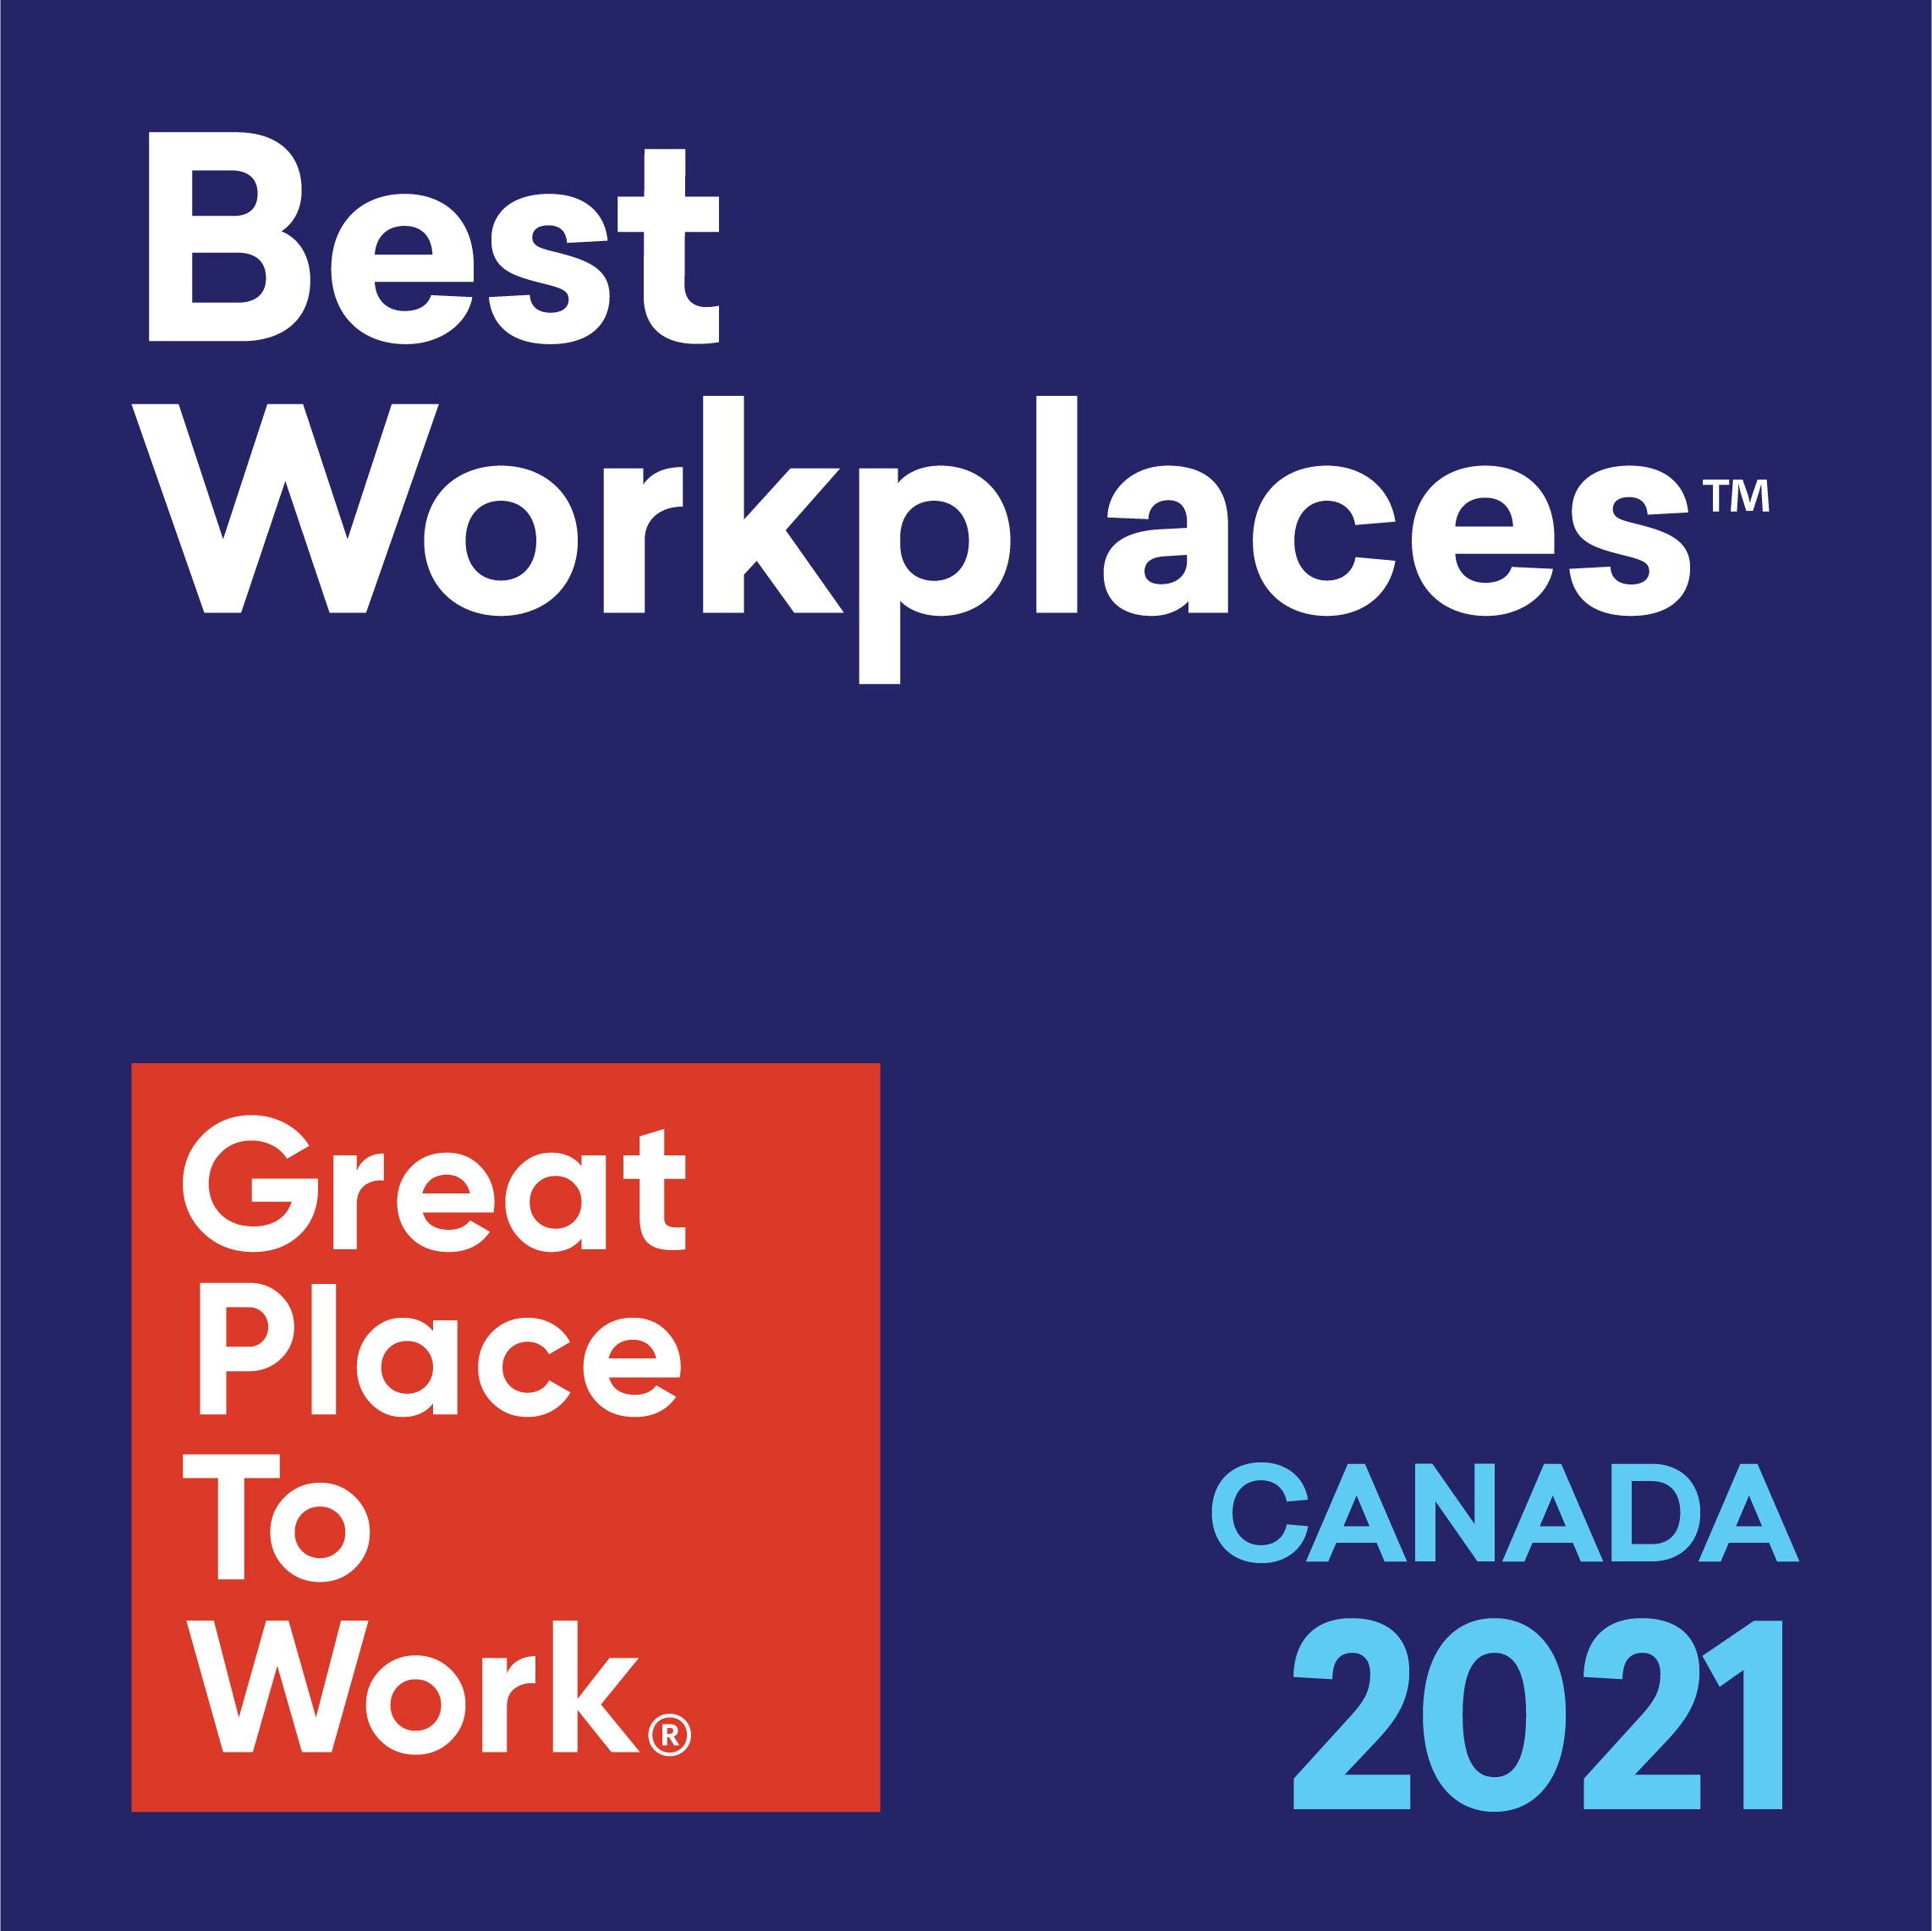 Best Workplaces in Canada 2021